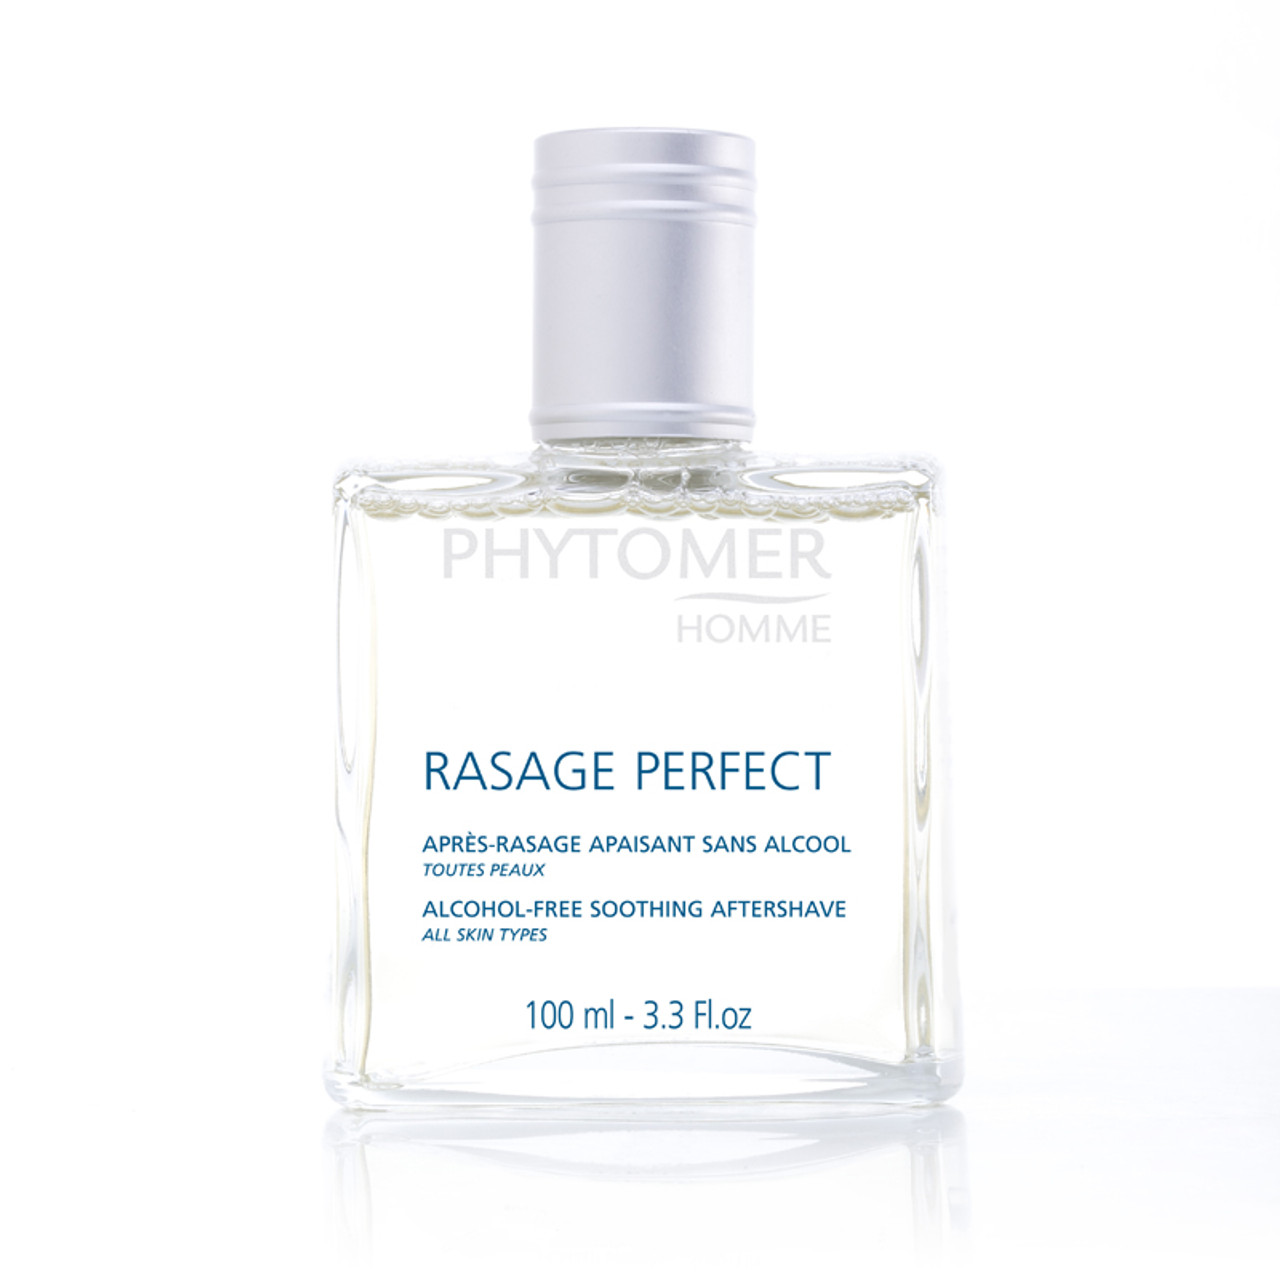 Phytomer Homme Rasage Perfect Alcohol-Free Soothing Aftershave BeautifiedYou.com